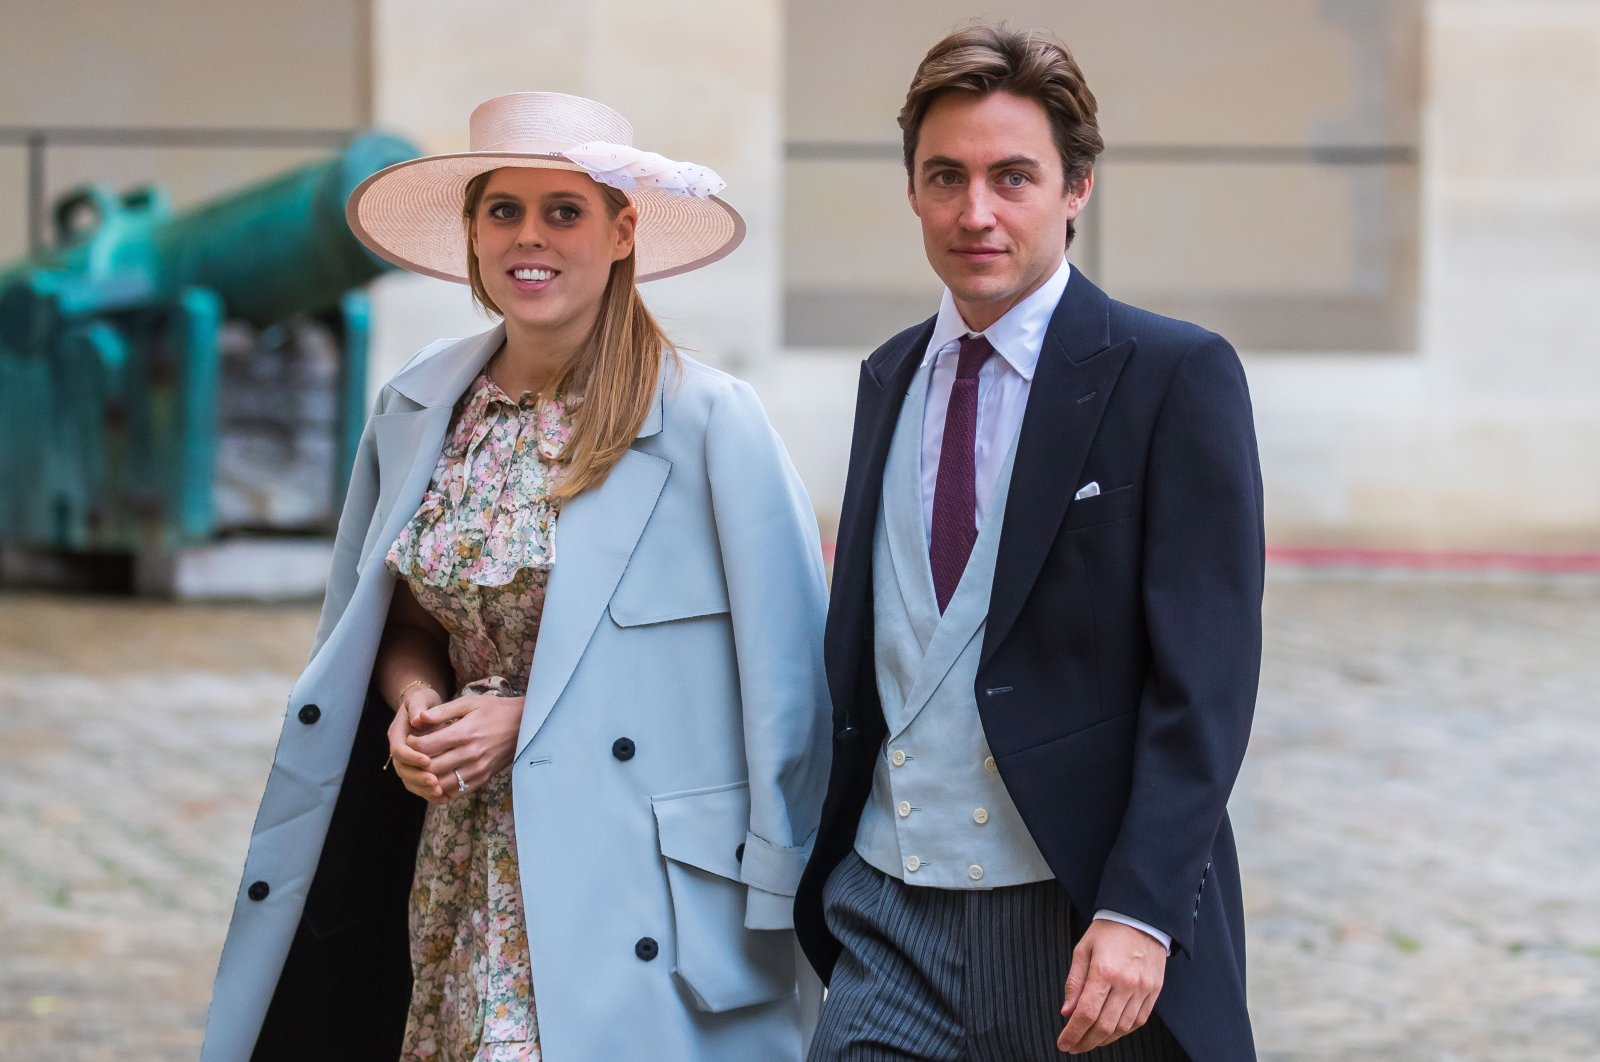 Britain's Princess Beatrice of York (L) and Edoardo Mapelli Mozzi (R) arrive for the wedding ceremony of the Prince Napoleon Countess Arco-Zinneberg at the Saint-Louis-des-Invalides cathedral at the Invalides National Hotel in Paris, France, Oct. 19, 2019. (EPA Photo)